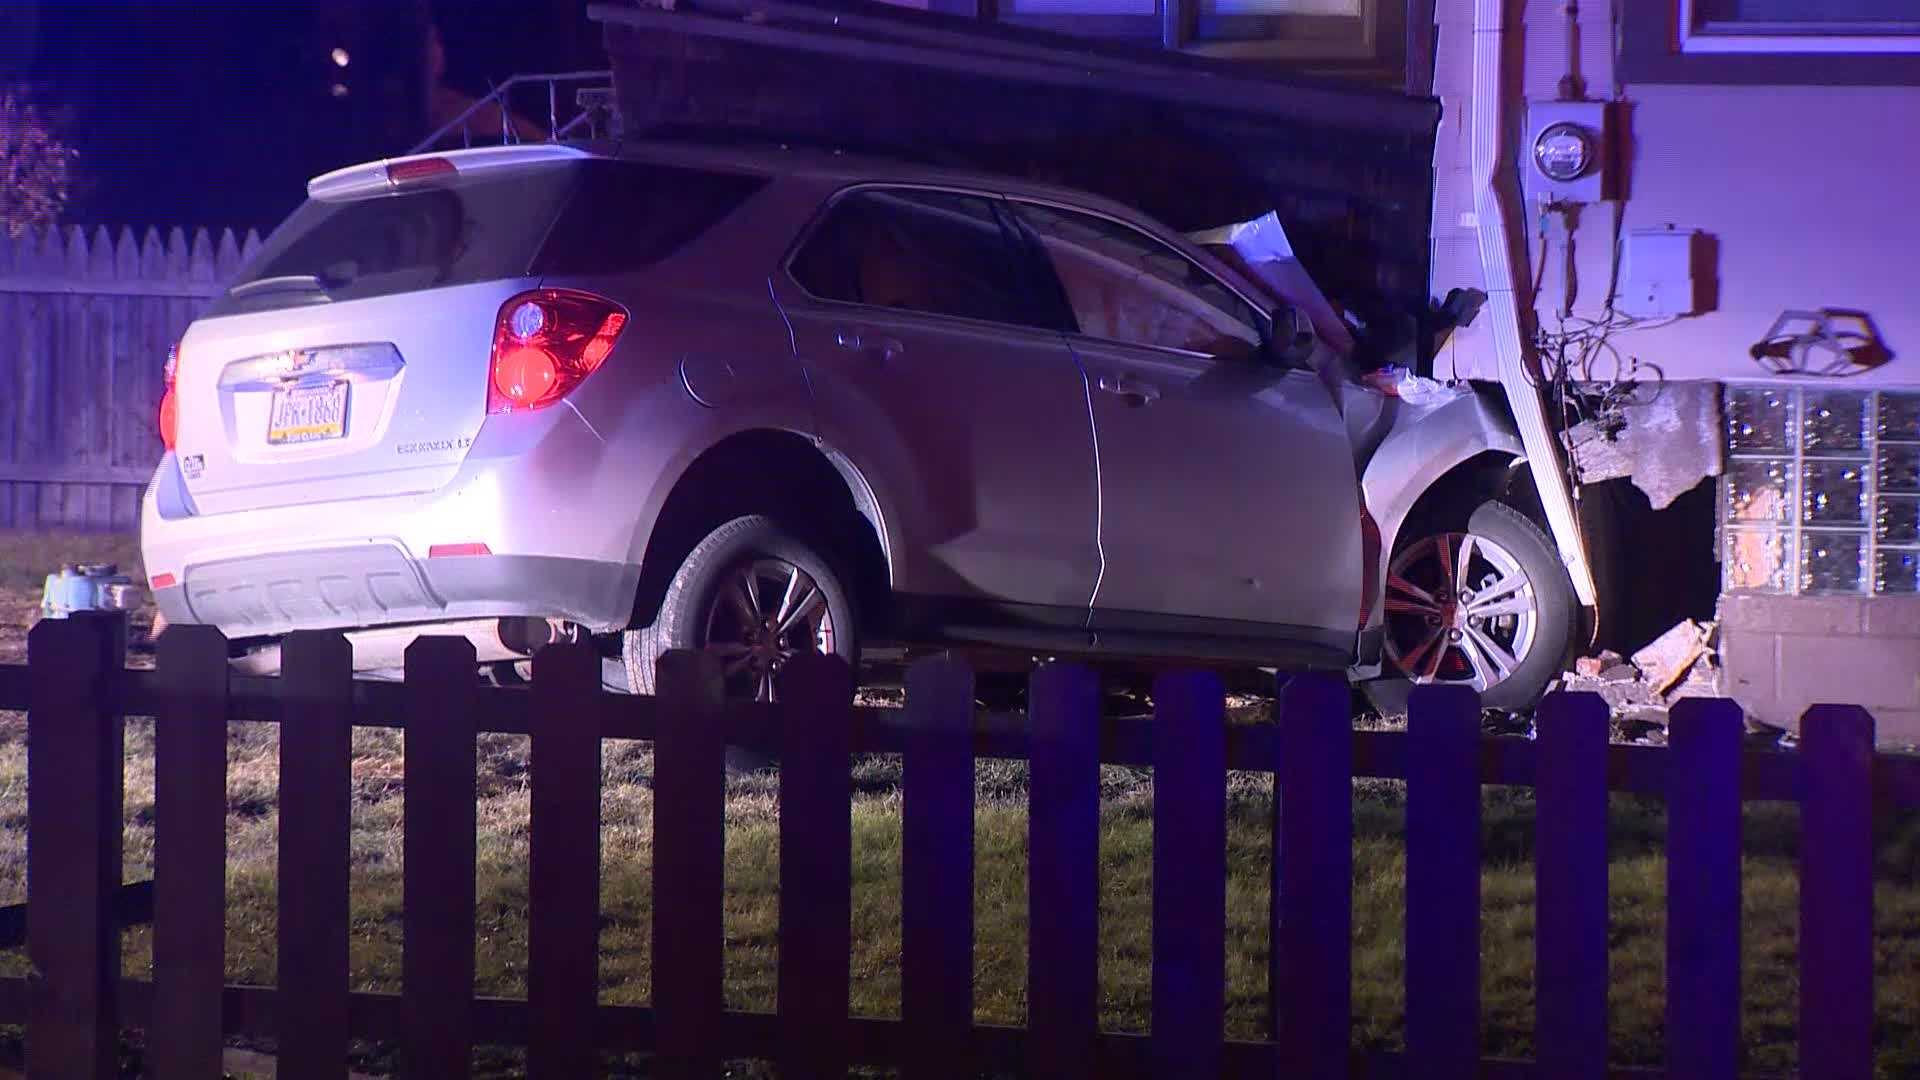 A car occupied by at least four juveniles crashed into a White Oak home Tuesday night, police said.